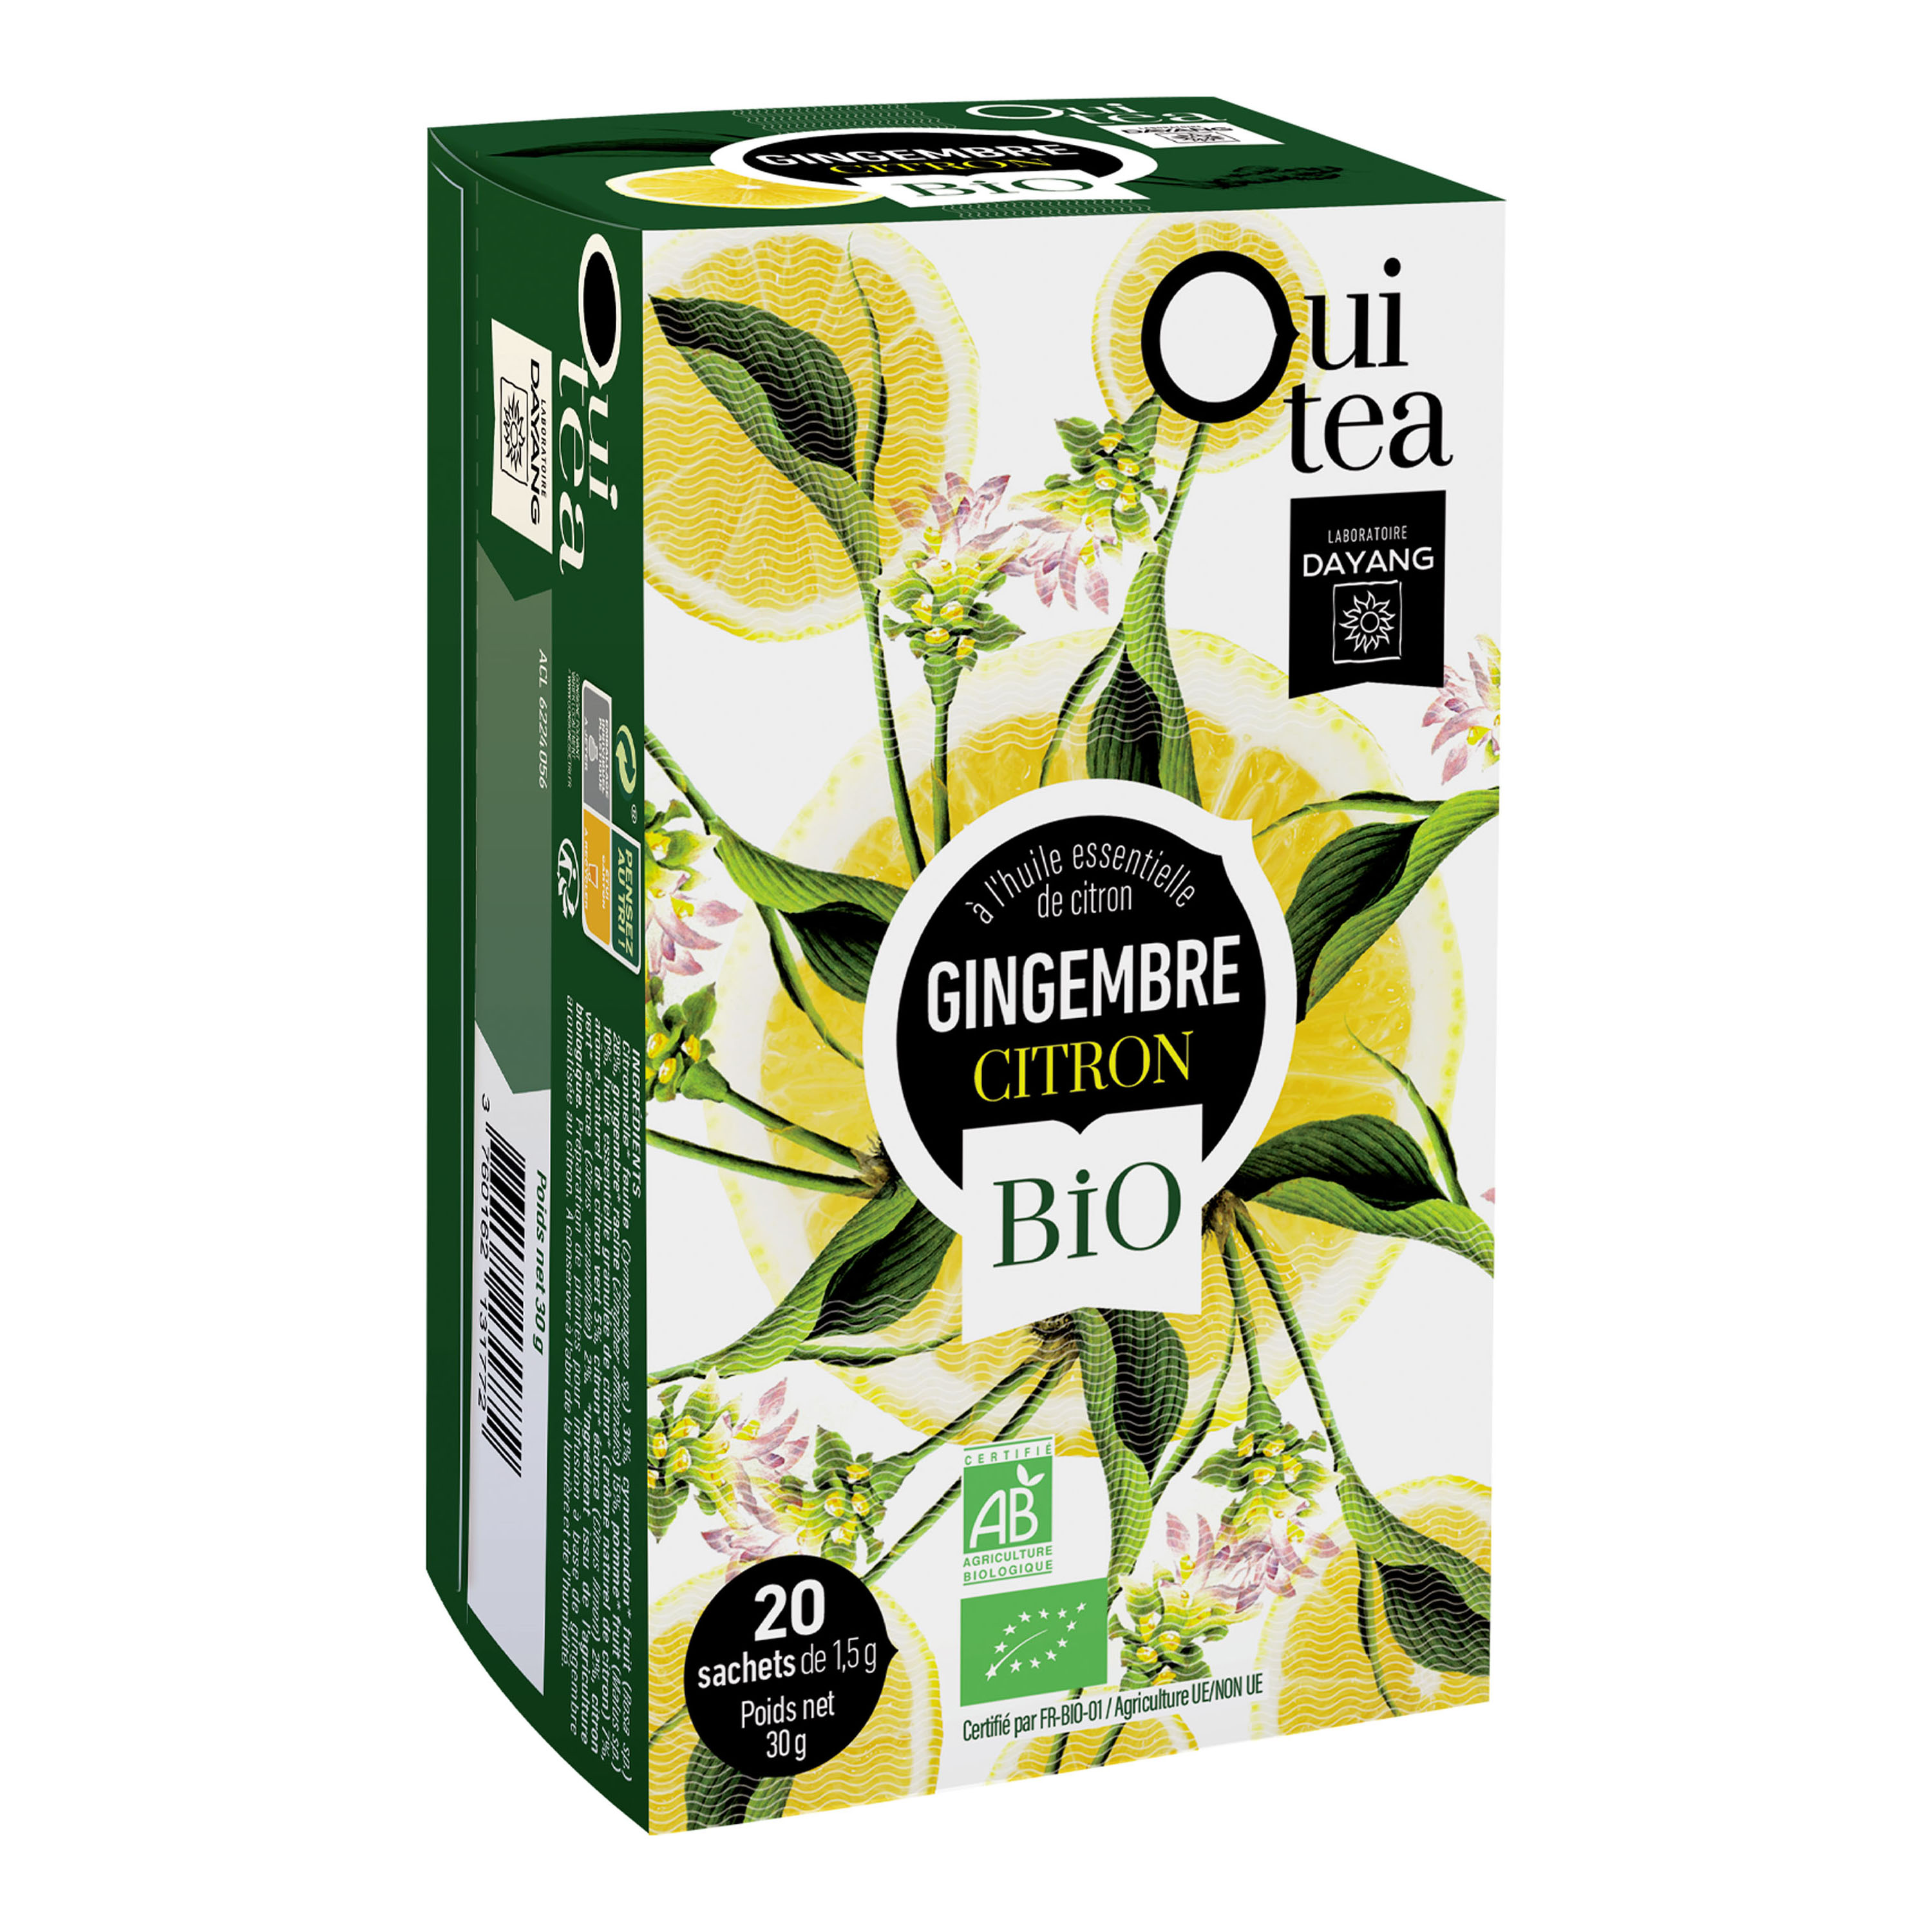 OUI TEA gingembre citron BIO